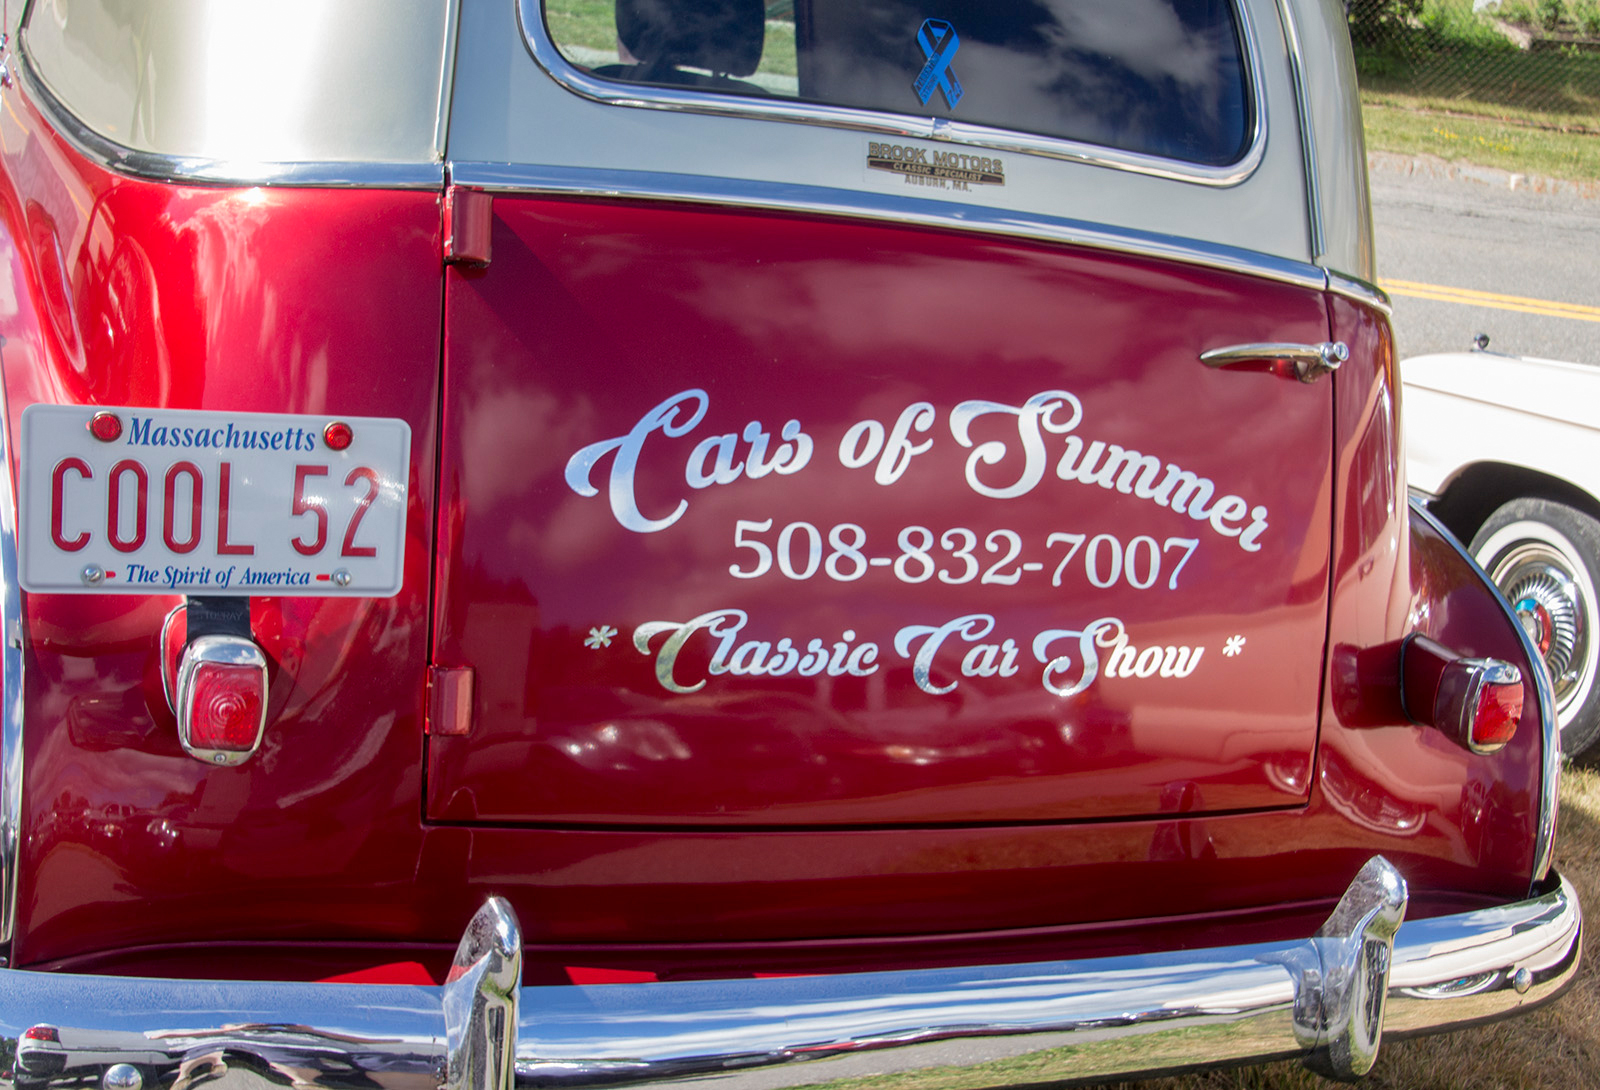 2016 Cars of Summer 52 Panel Van in Bright Red